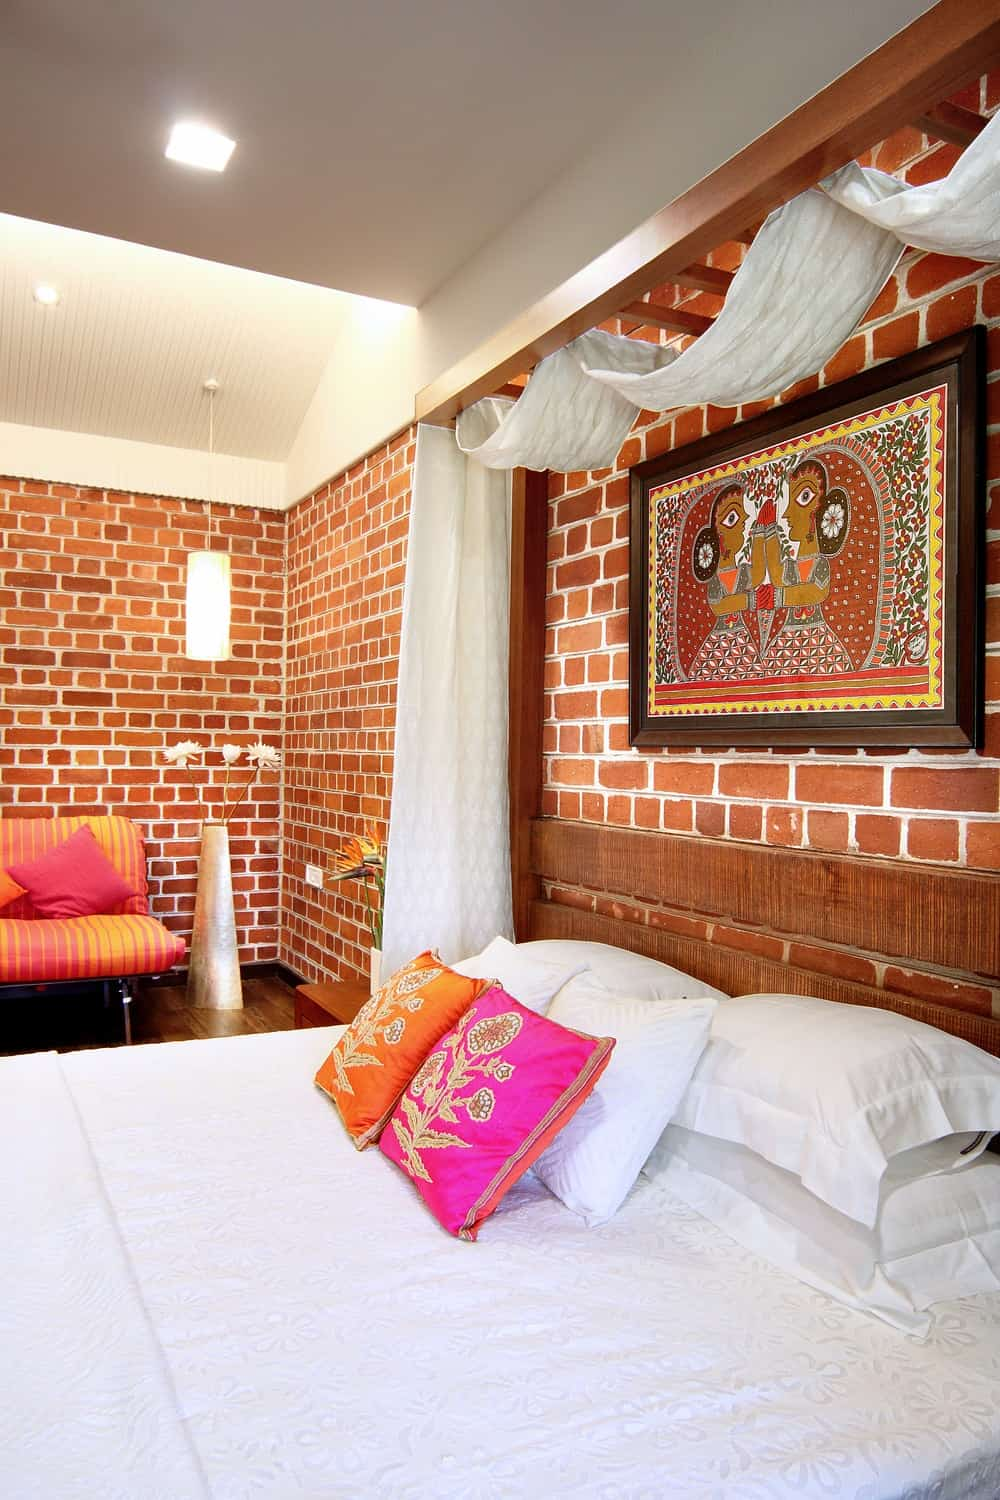 This other bedroom has a wooden bed topped with a colorful painting above its wooden headboard and has a sitting area on the side.